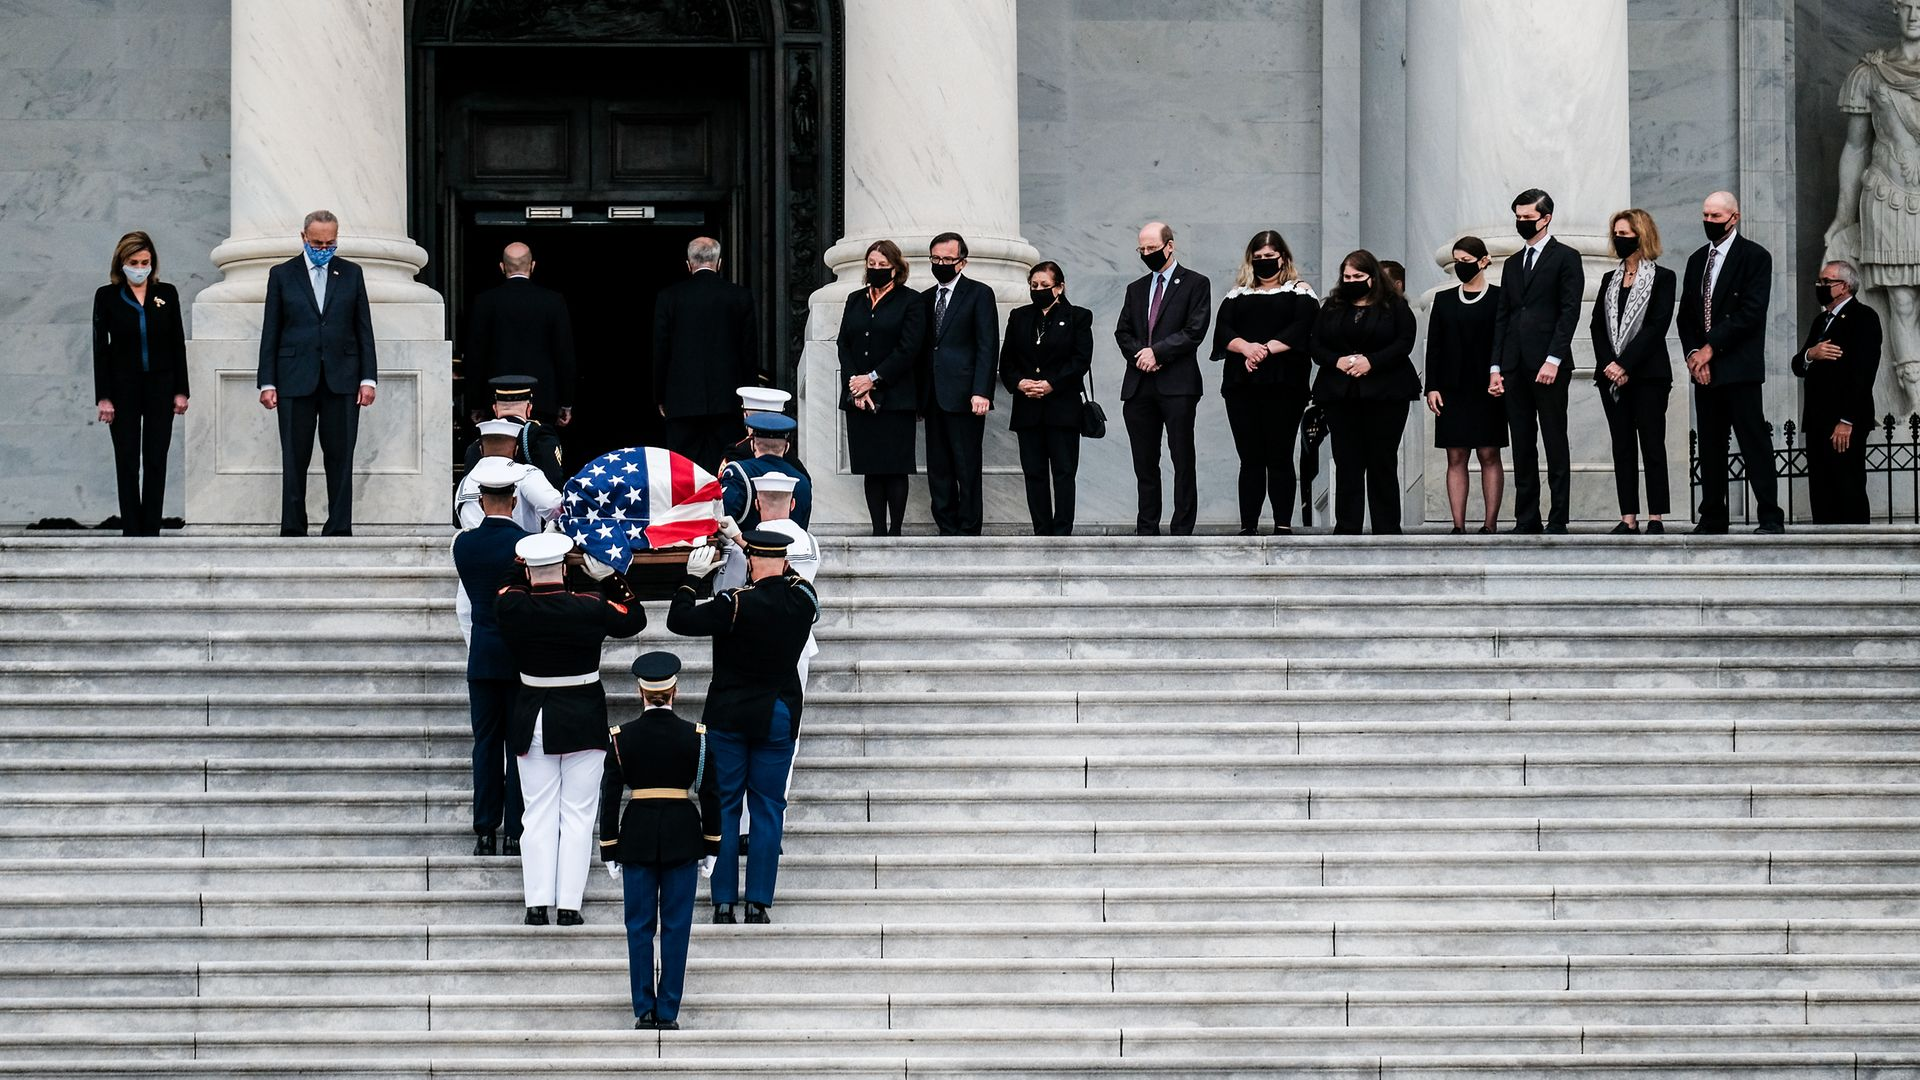 A military honour guard team carries the casket of the late Supreme Court Justice Ruth Bader Ginsburg into the U.S. Capitol to lie in state - Credit: Getty Images